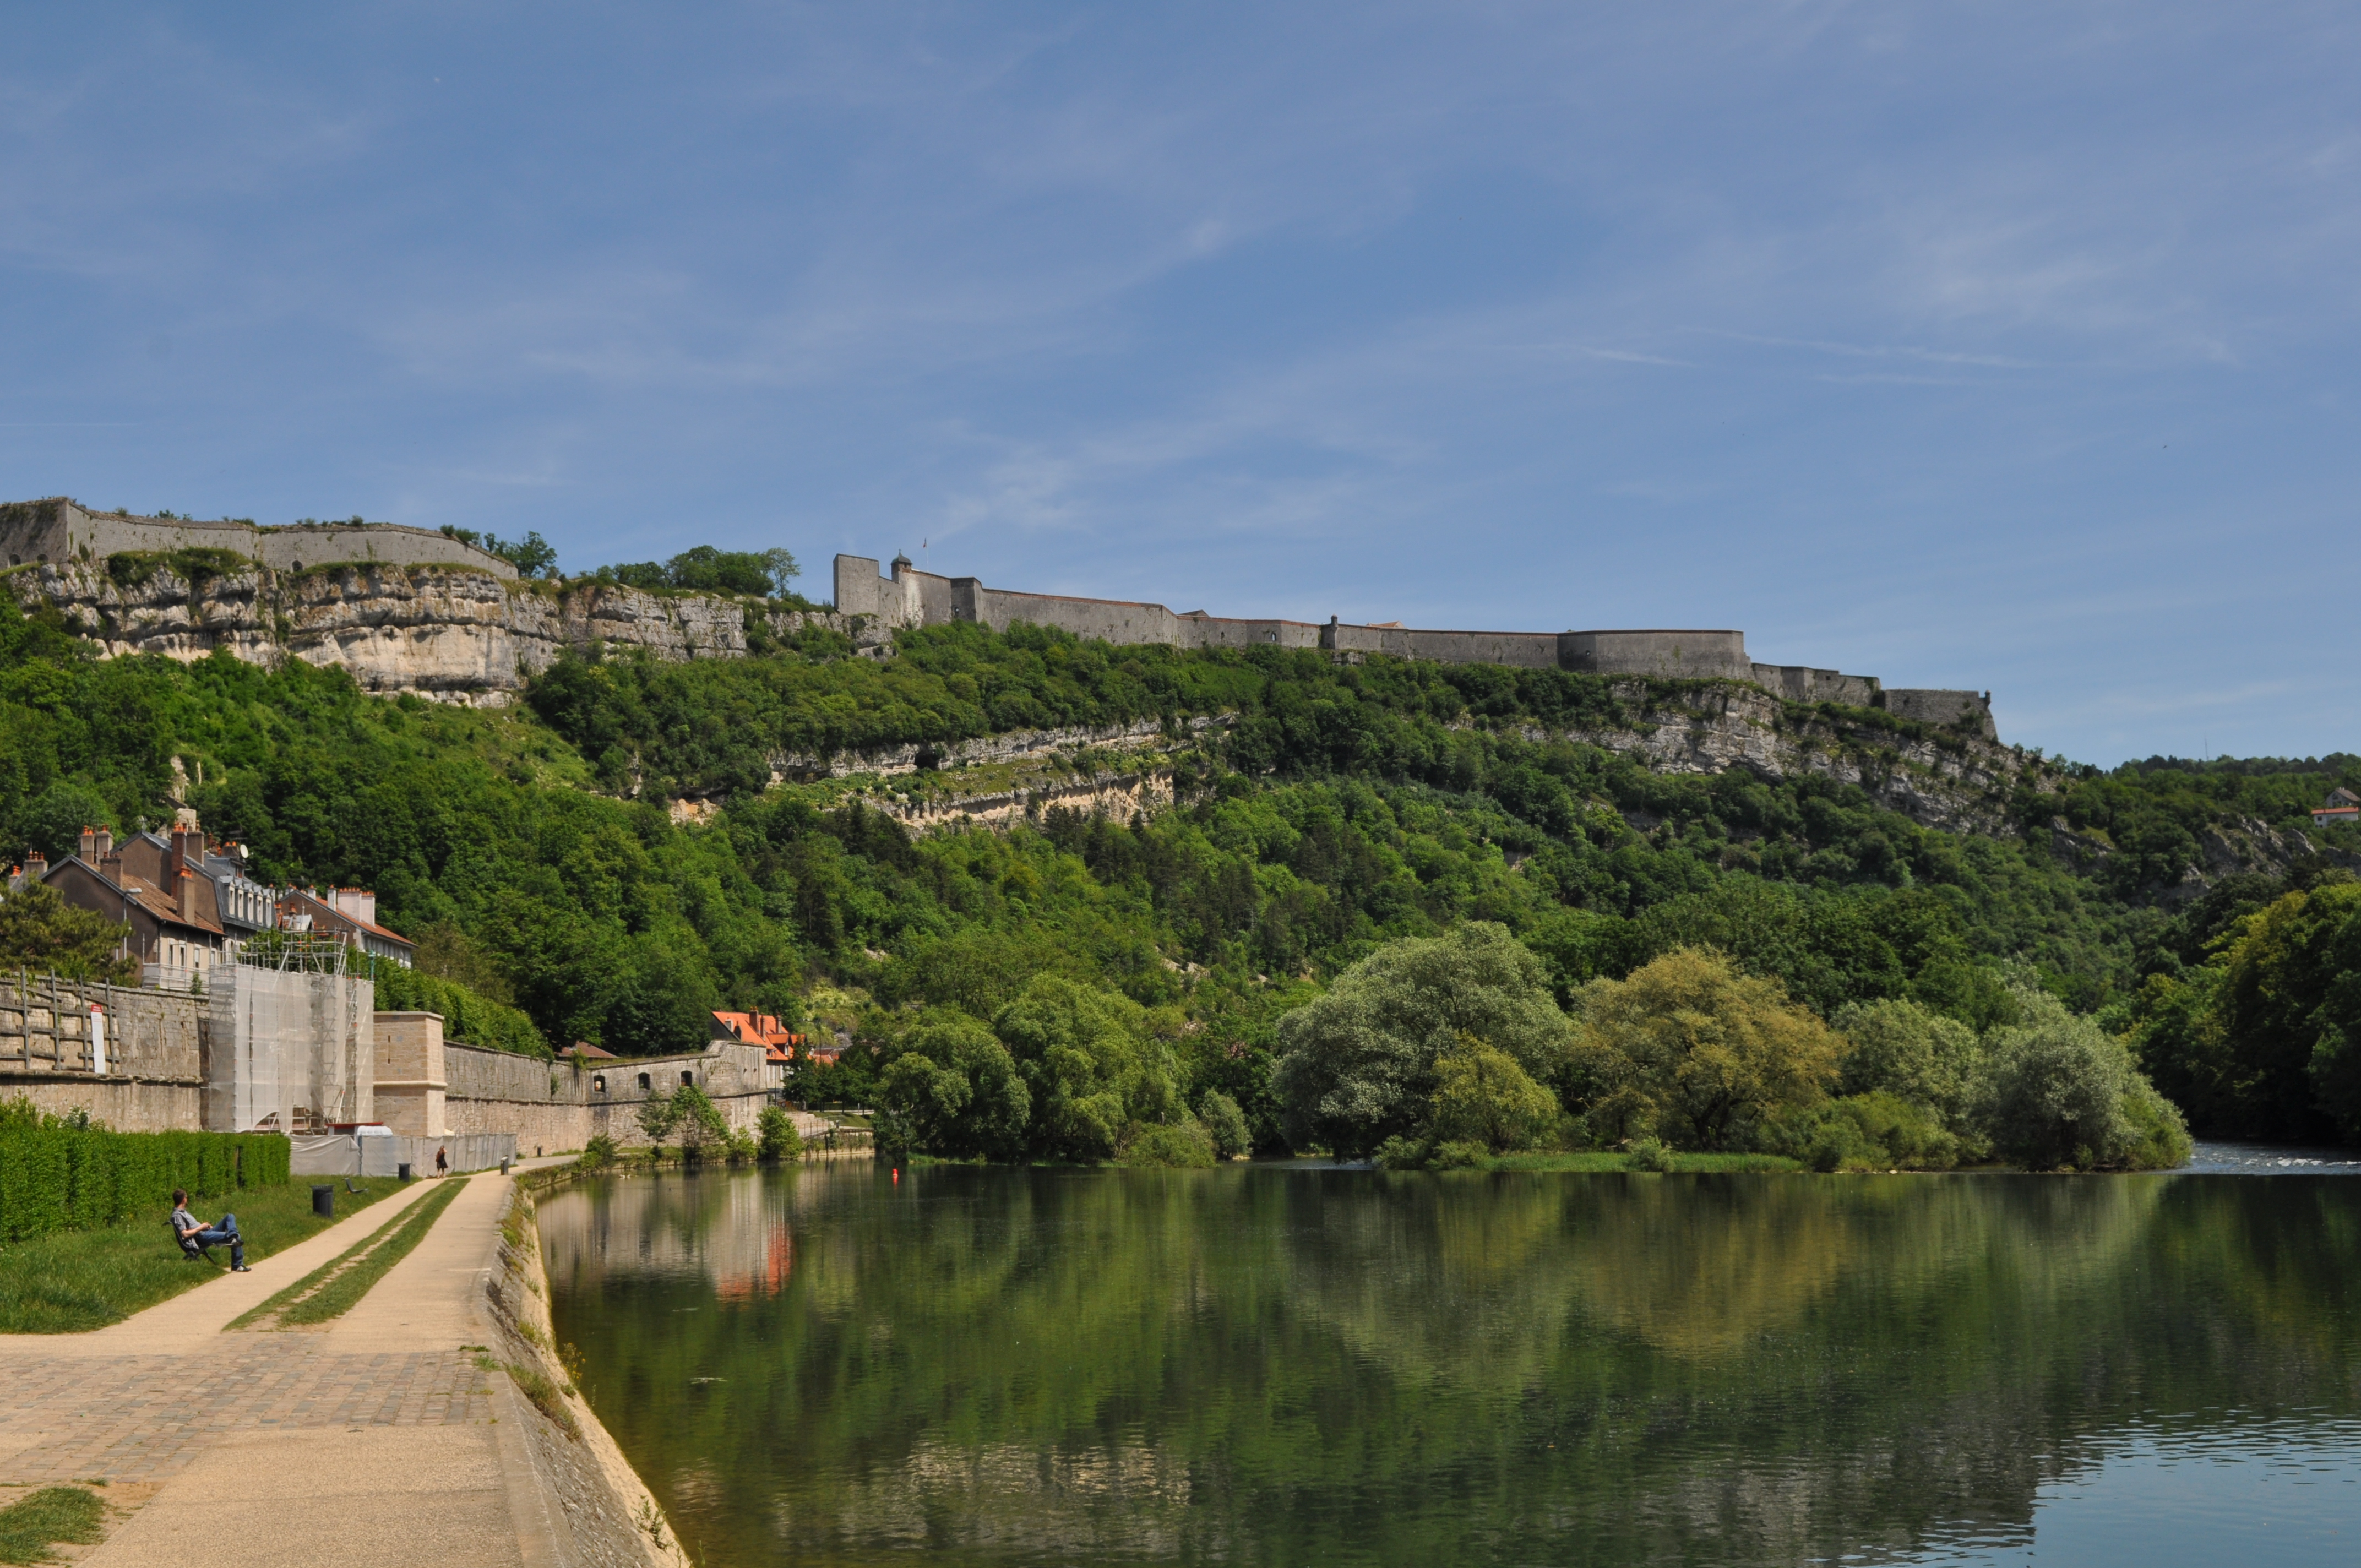 File:Citadel of Besancon over the Doubs river.JPG - Wikimedia Commons